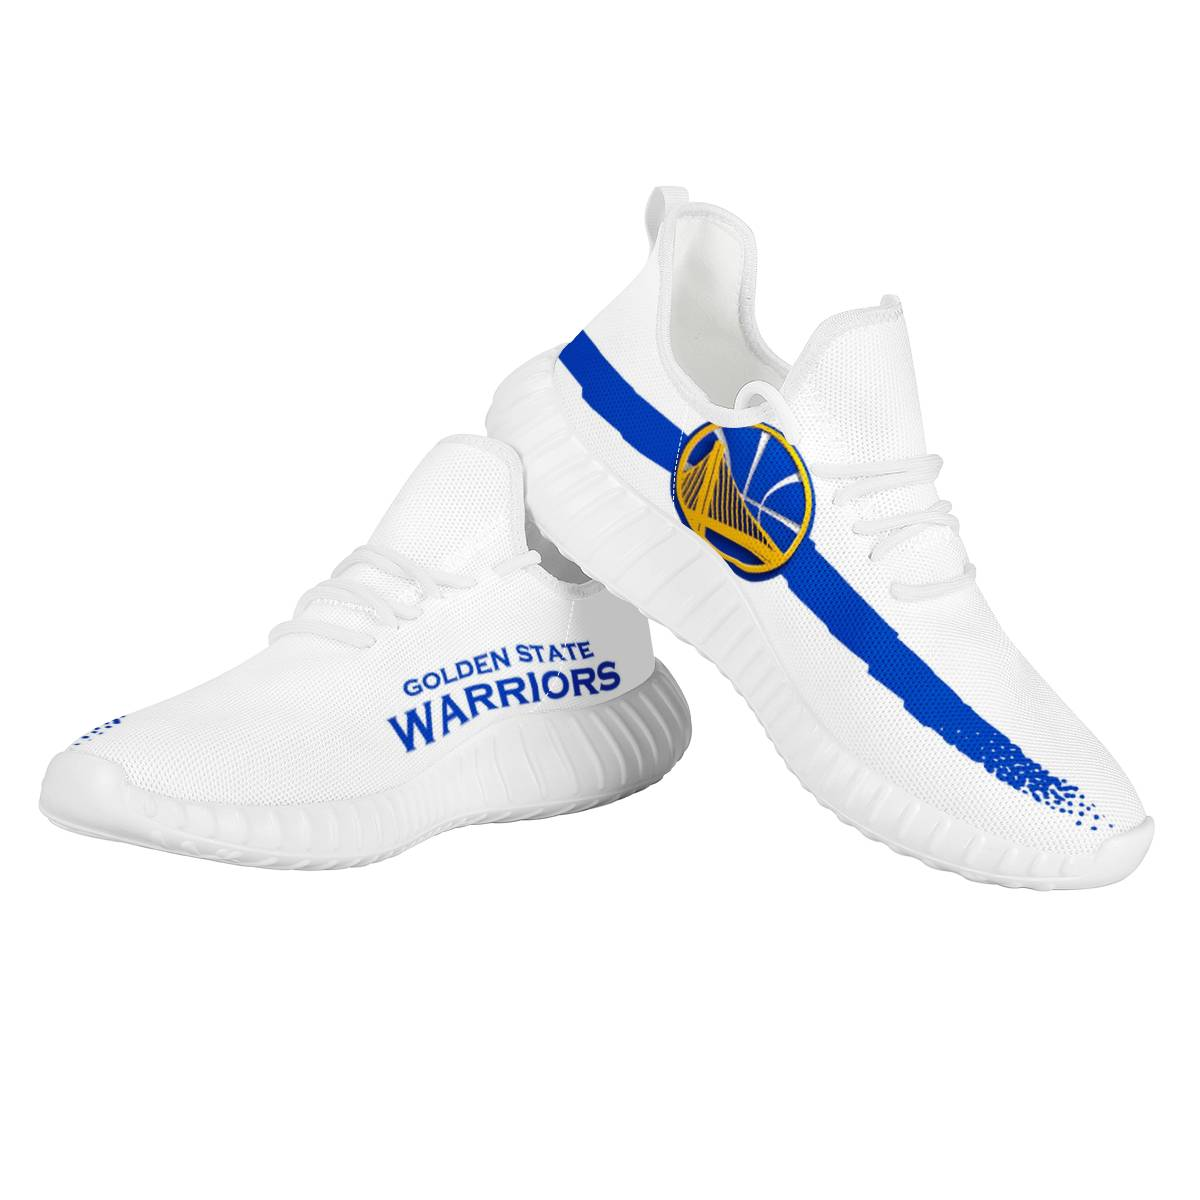 Women's Golden State Warriors Mesh Knit Sneakers/Shoes 001